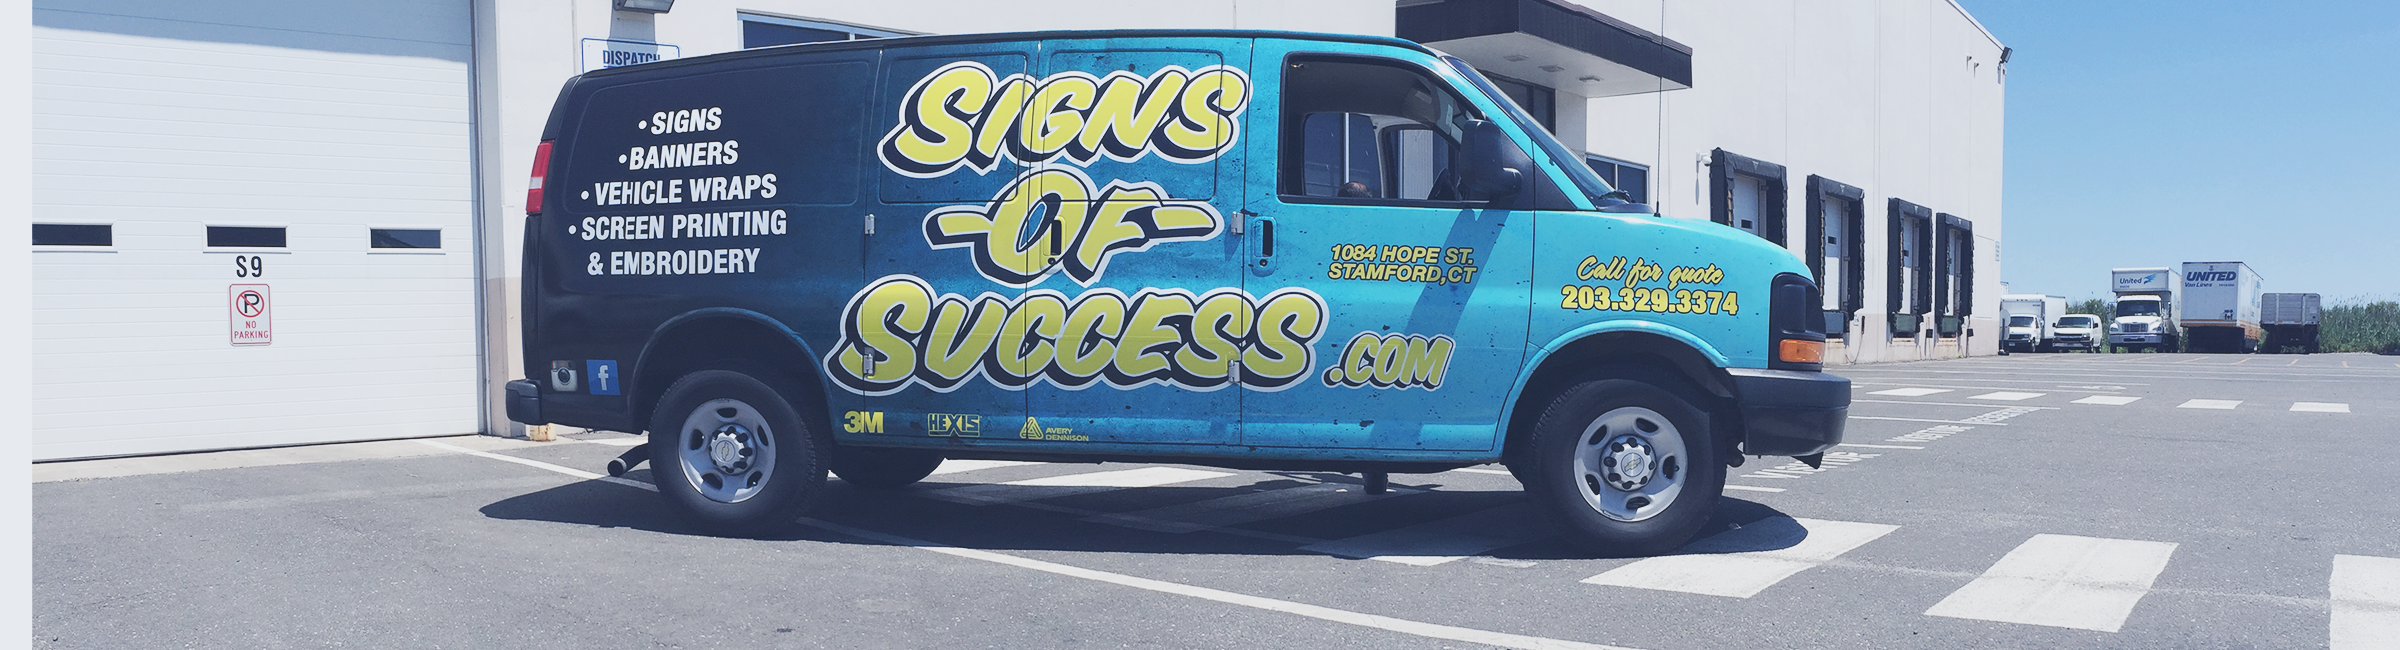 Signs of Success Van